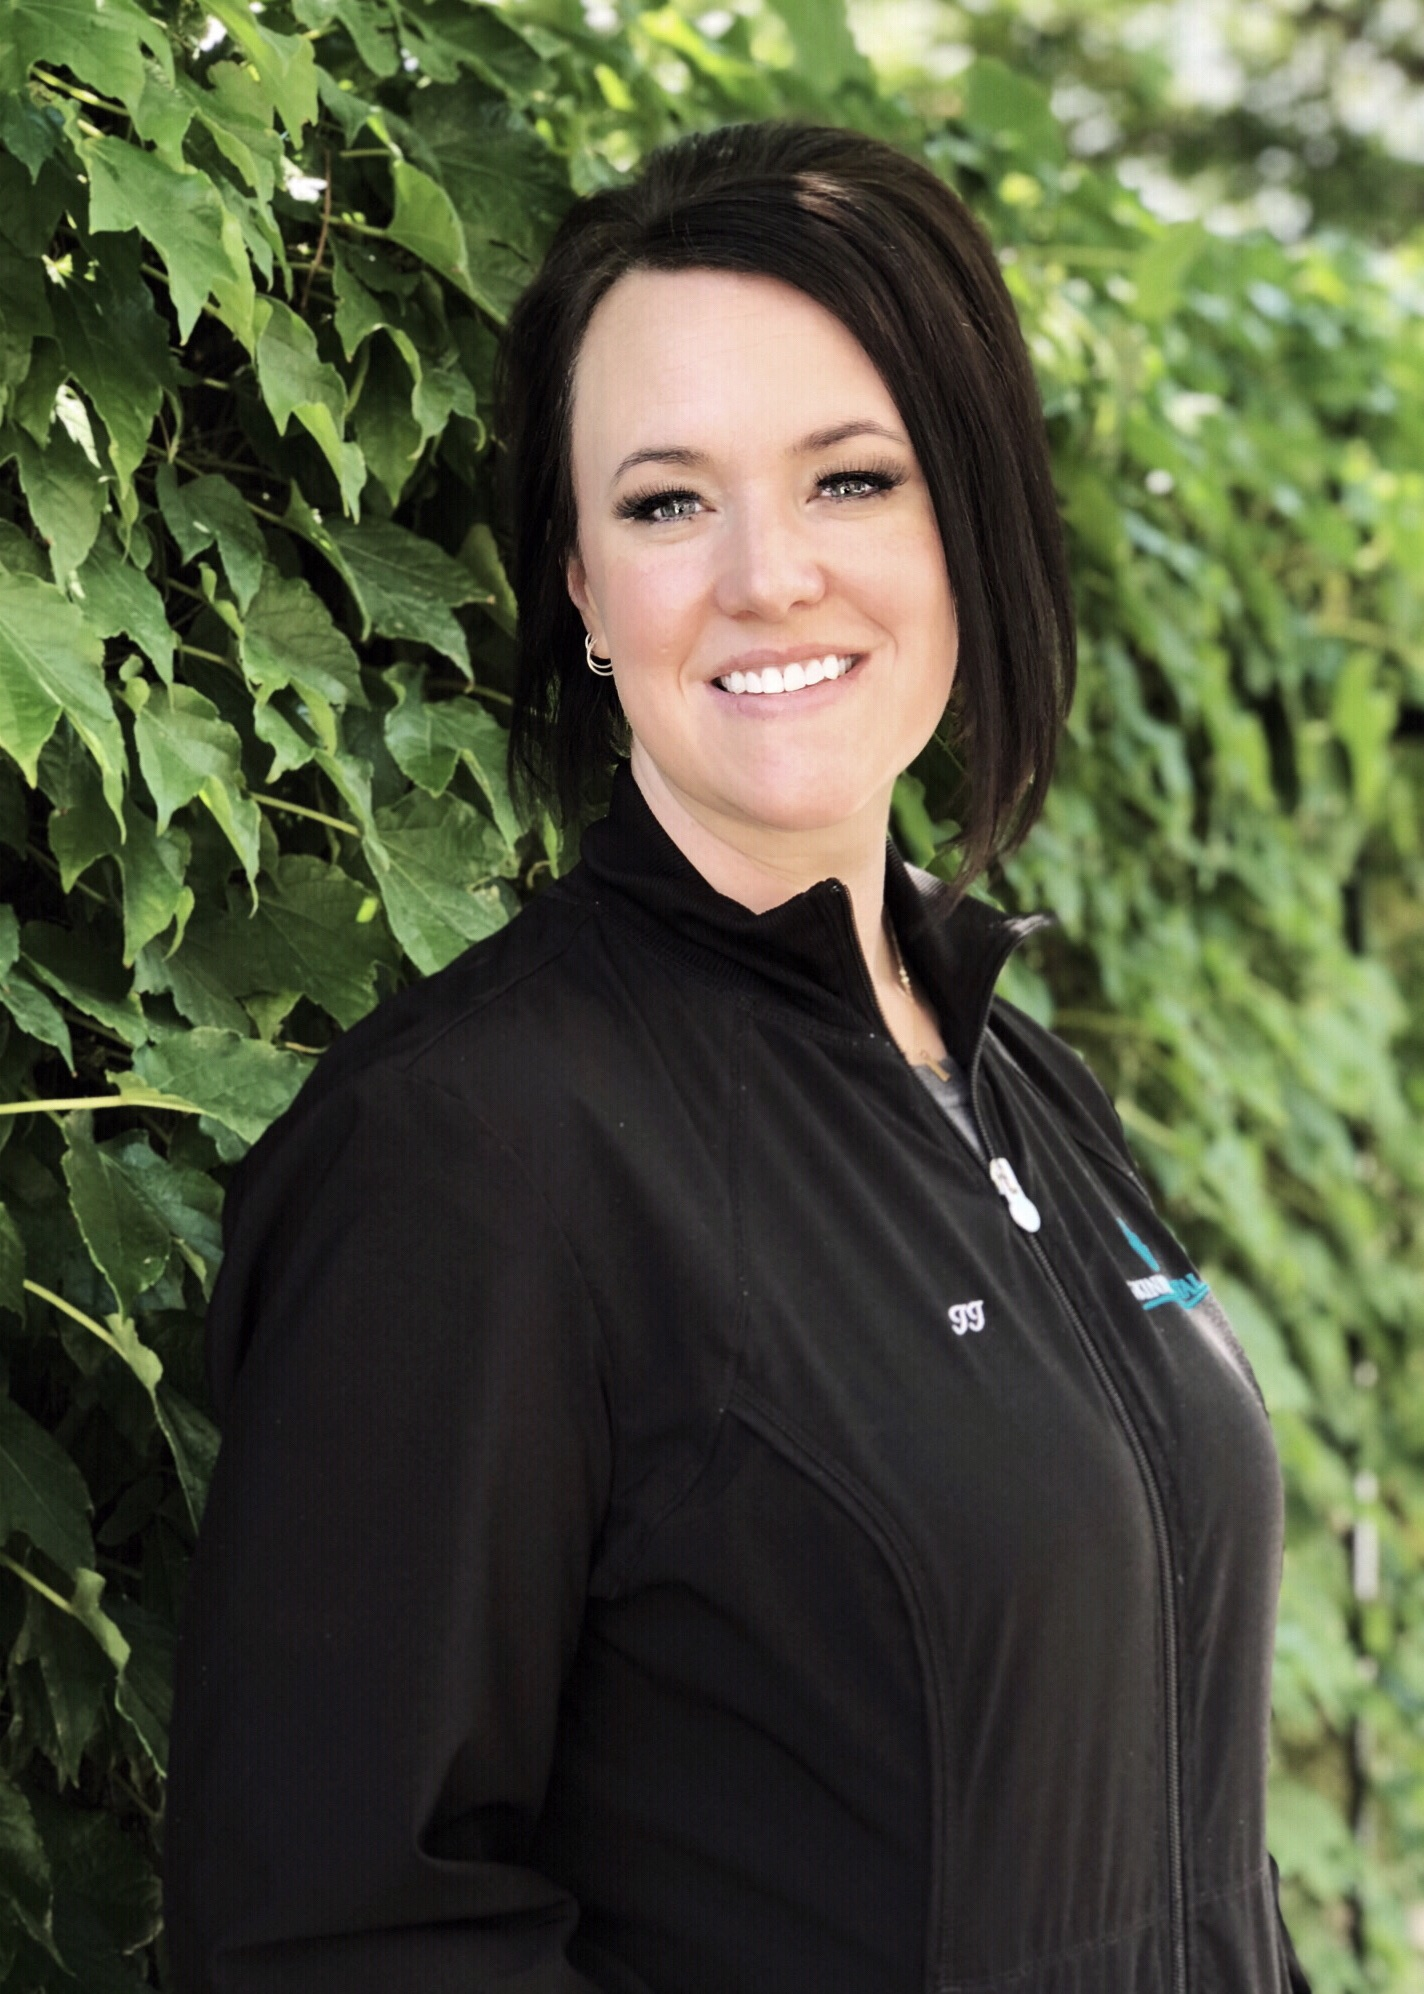 JJLead Dental Assistant - I am a Minnesota native and mother of 2 girls. I have been a practicing Dental Assistant for 15 plus years now. I enjoy learning new dental technology. My favorite part of dentistry is conversing with patients and patient education. Concerts, museums, documentaries, biographies are a few of the things that I enjoy!